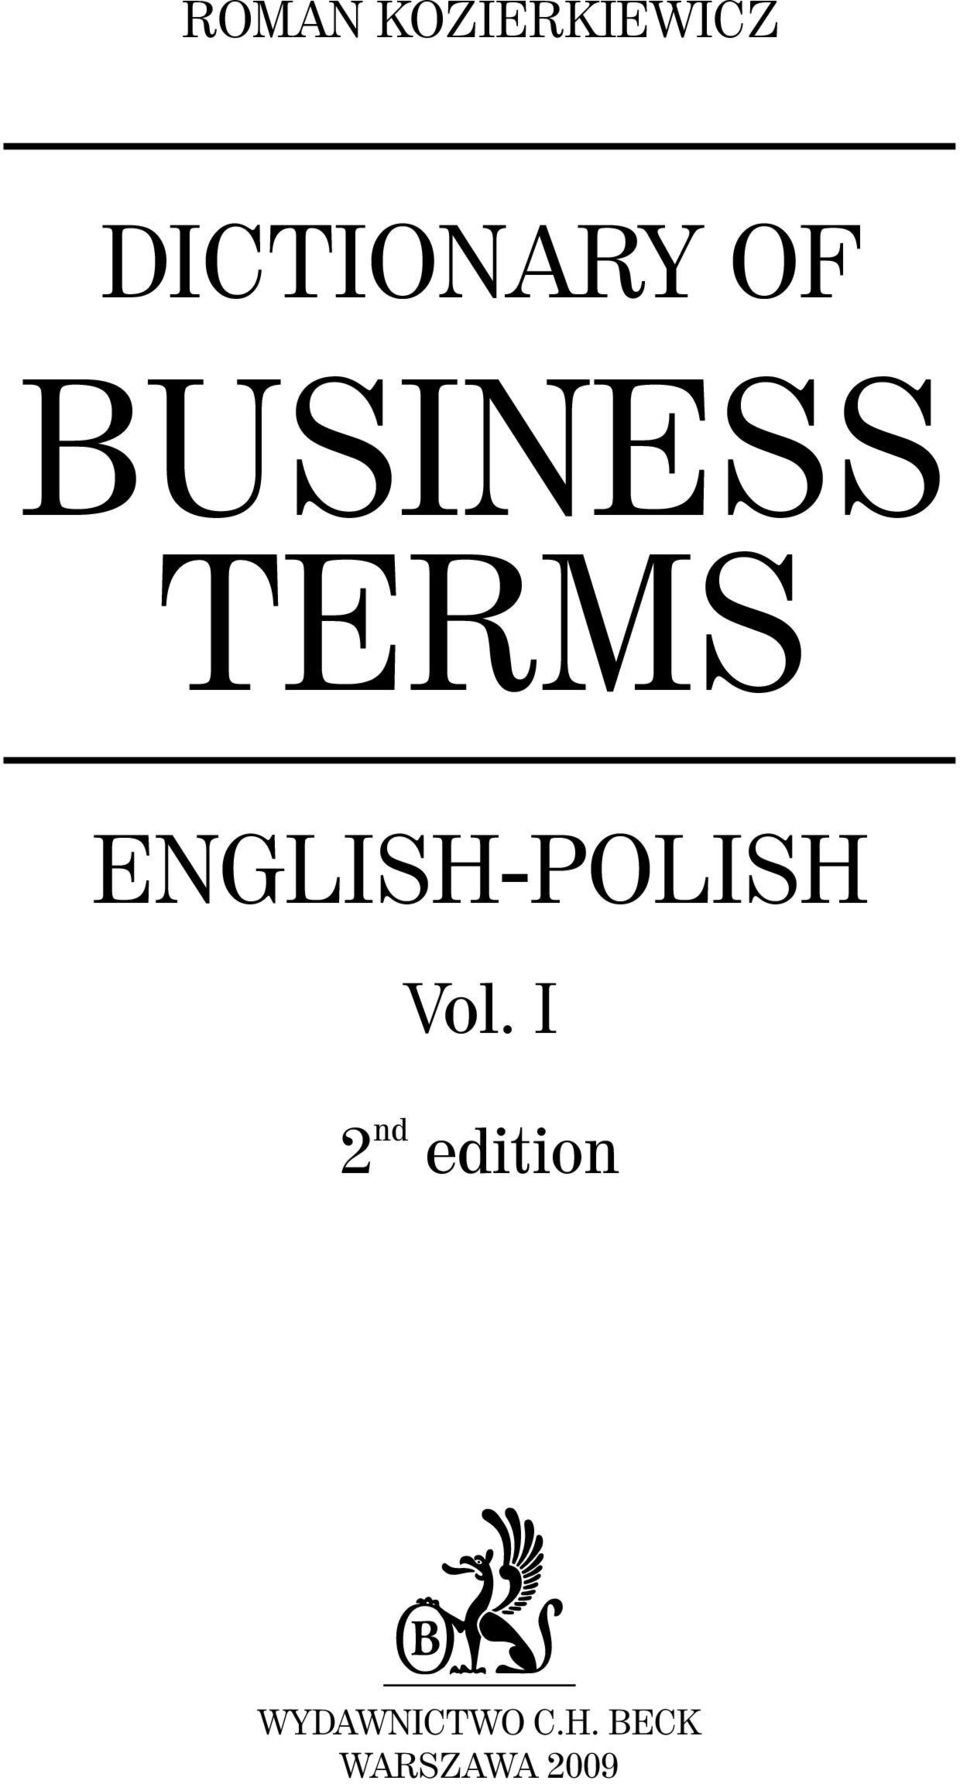 ENGLISH-POLISH Vol.